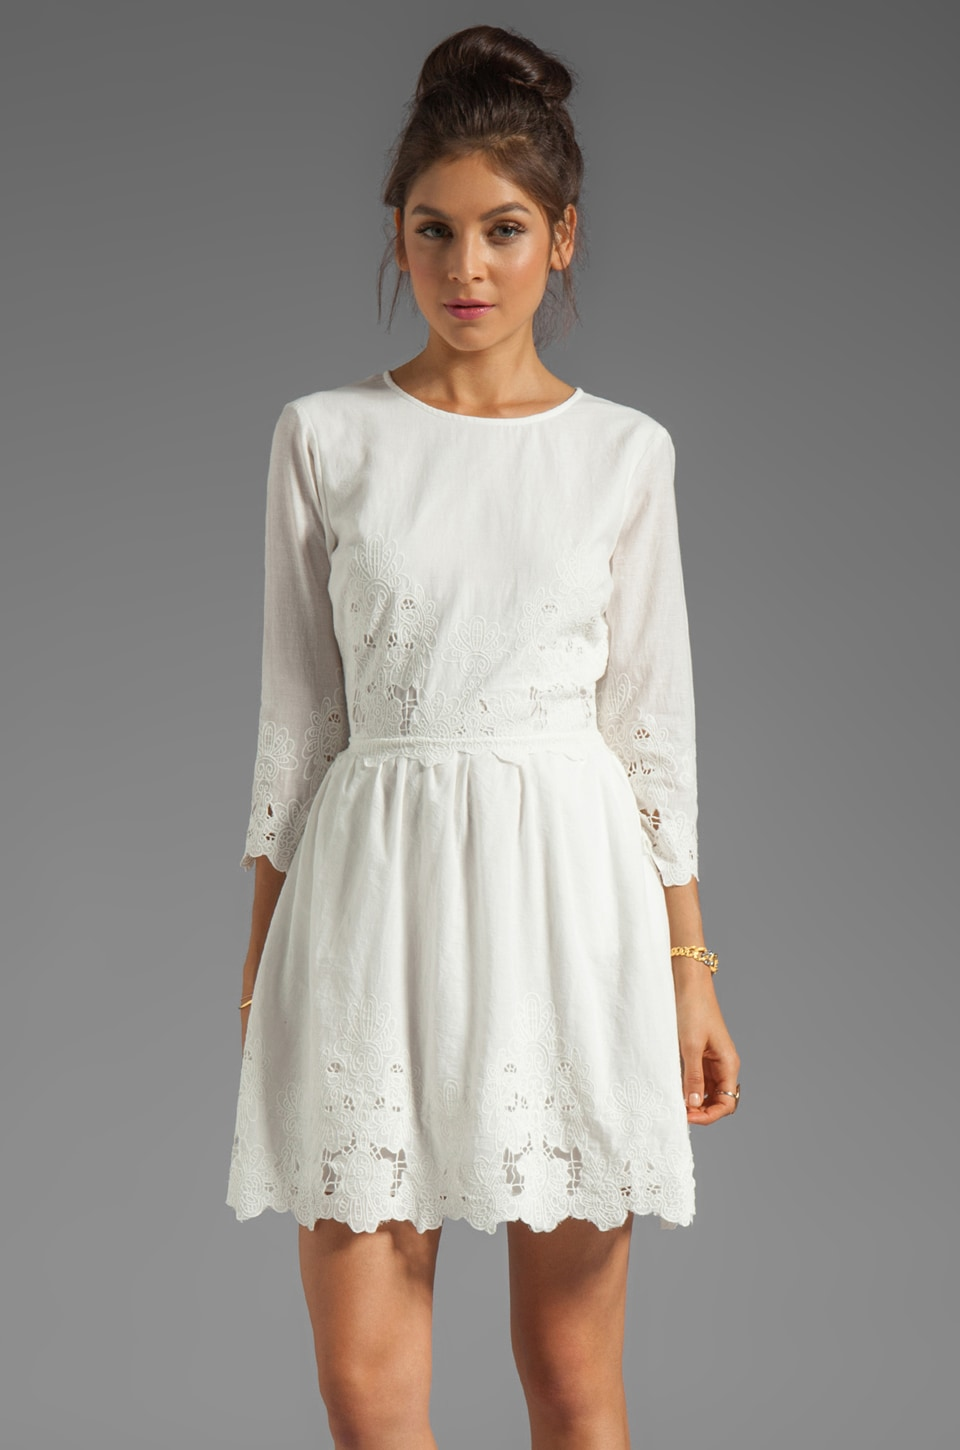 Dolce Vita Val Sunflower Lace Dress in Frost